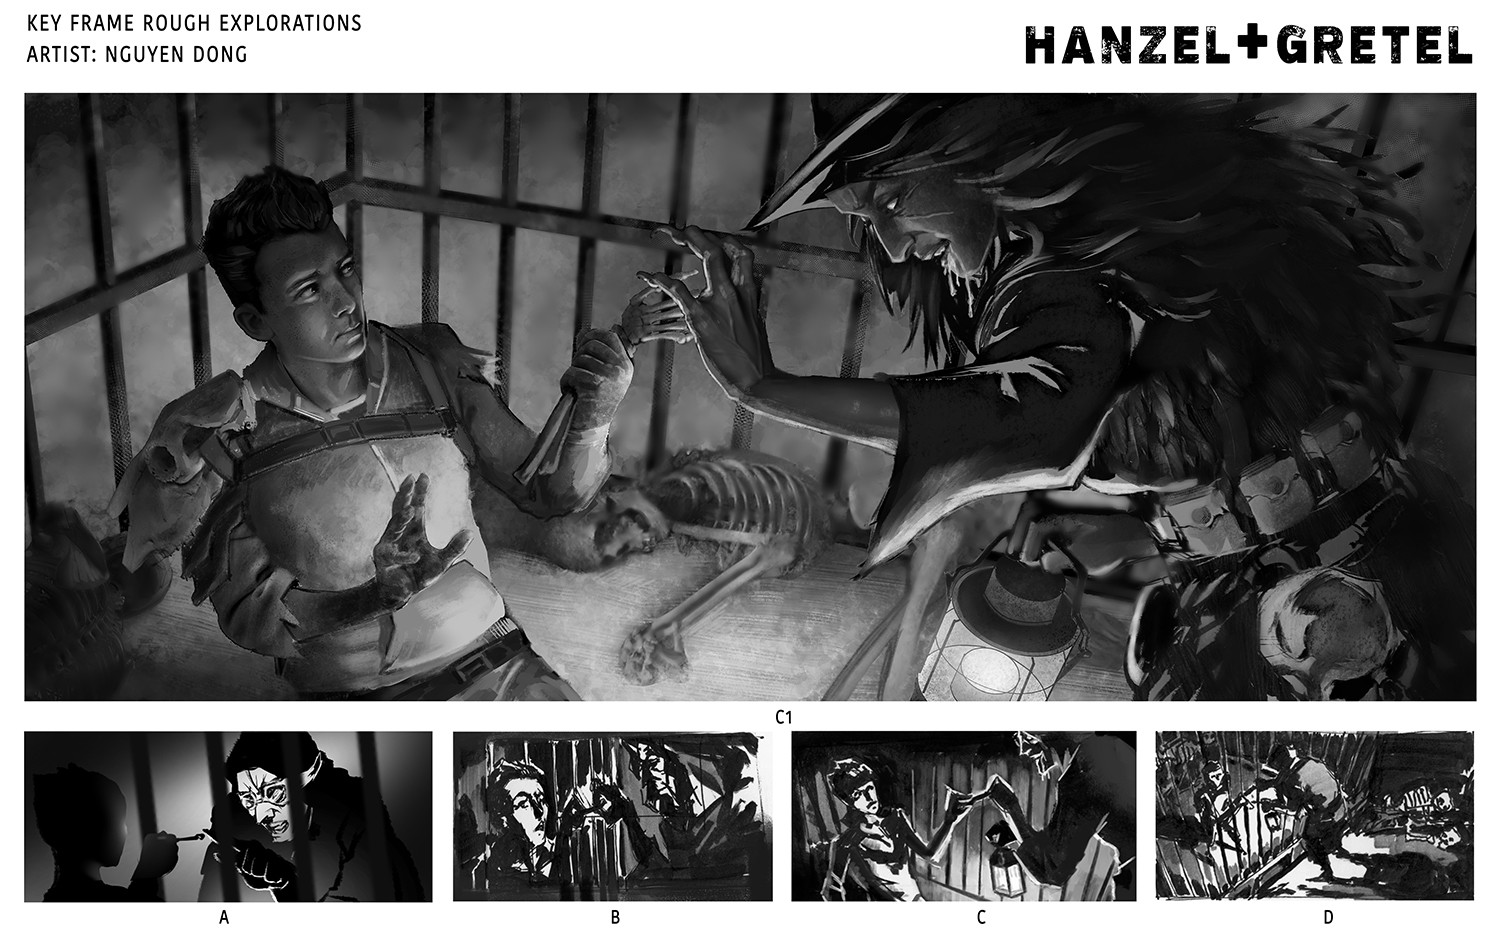 Hanz tricks the blind cannibal witch by handing her a chicken bone instead of his own finger.  Rough keyframe explorations